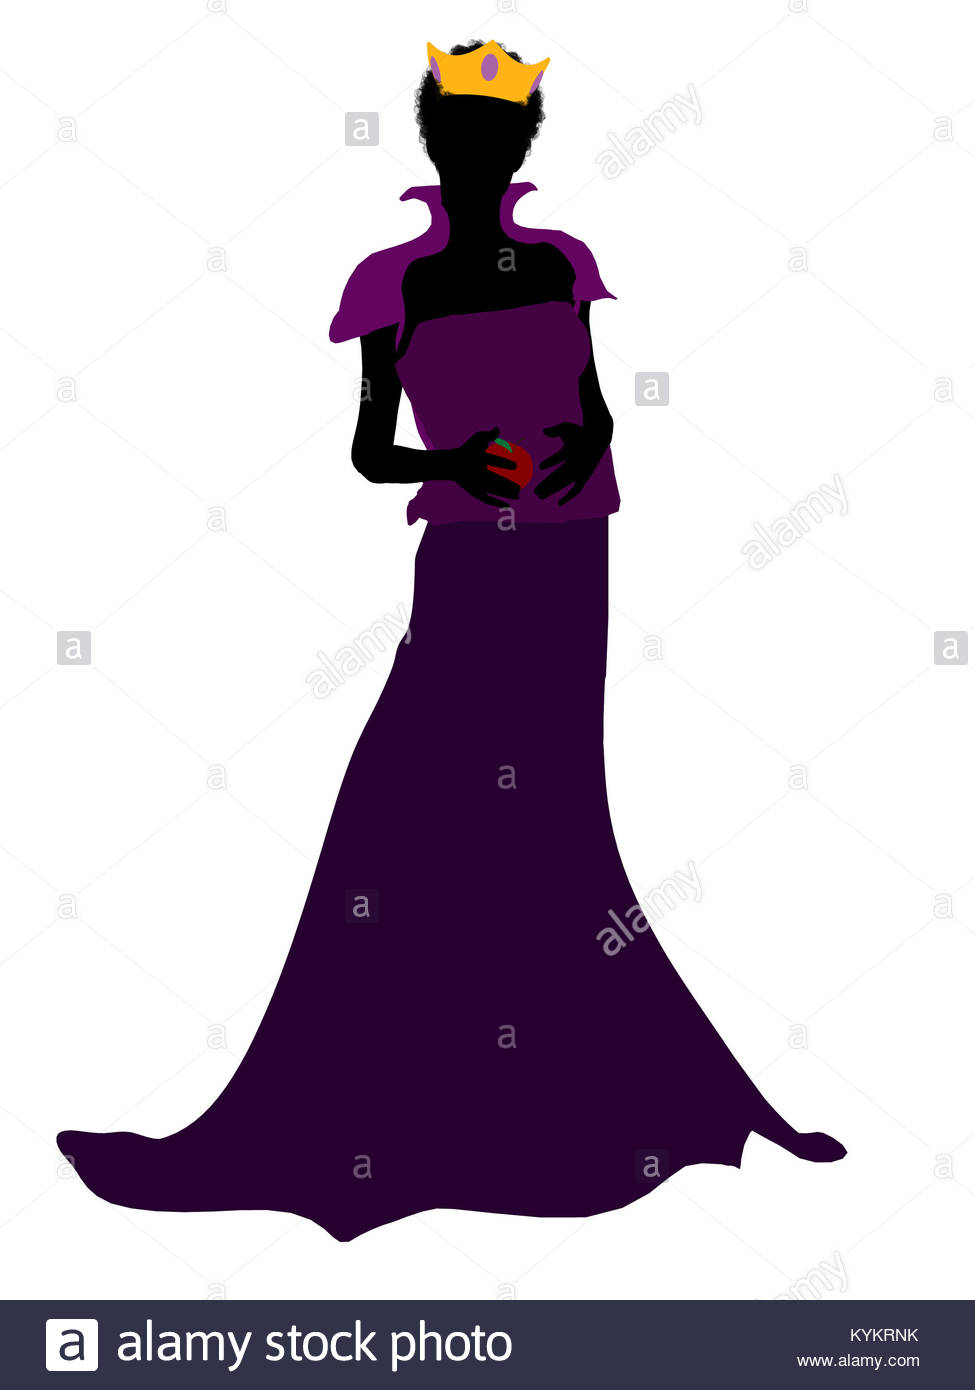 975x1390 Evil Queen Illustration Silhouette On A White Background Stock